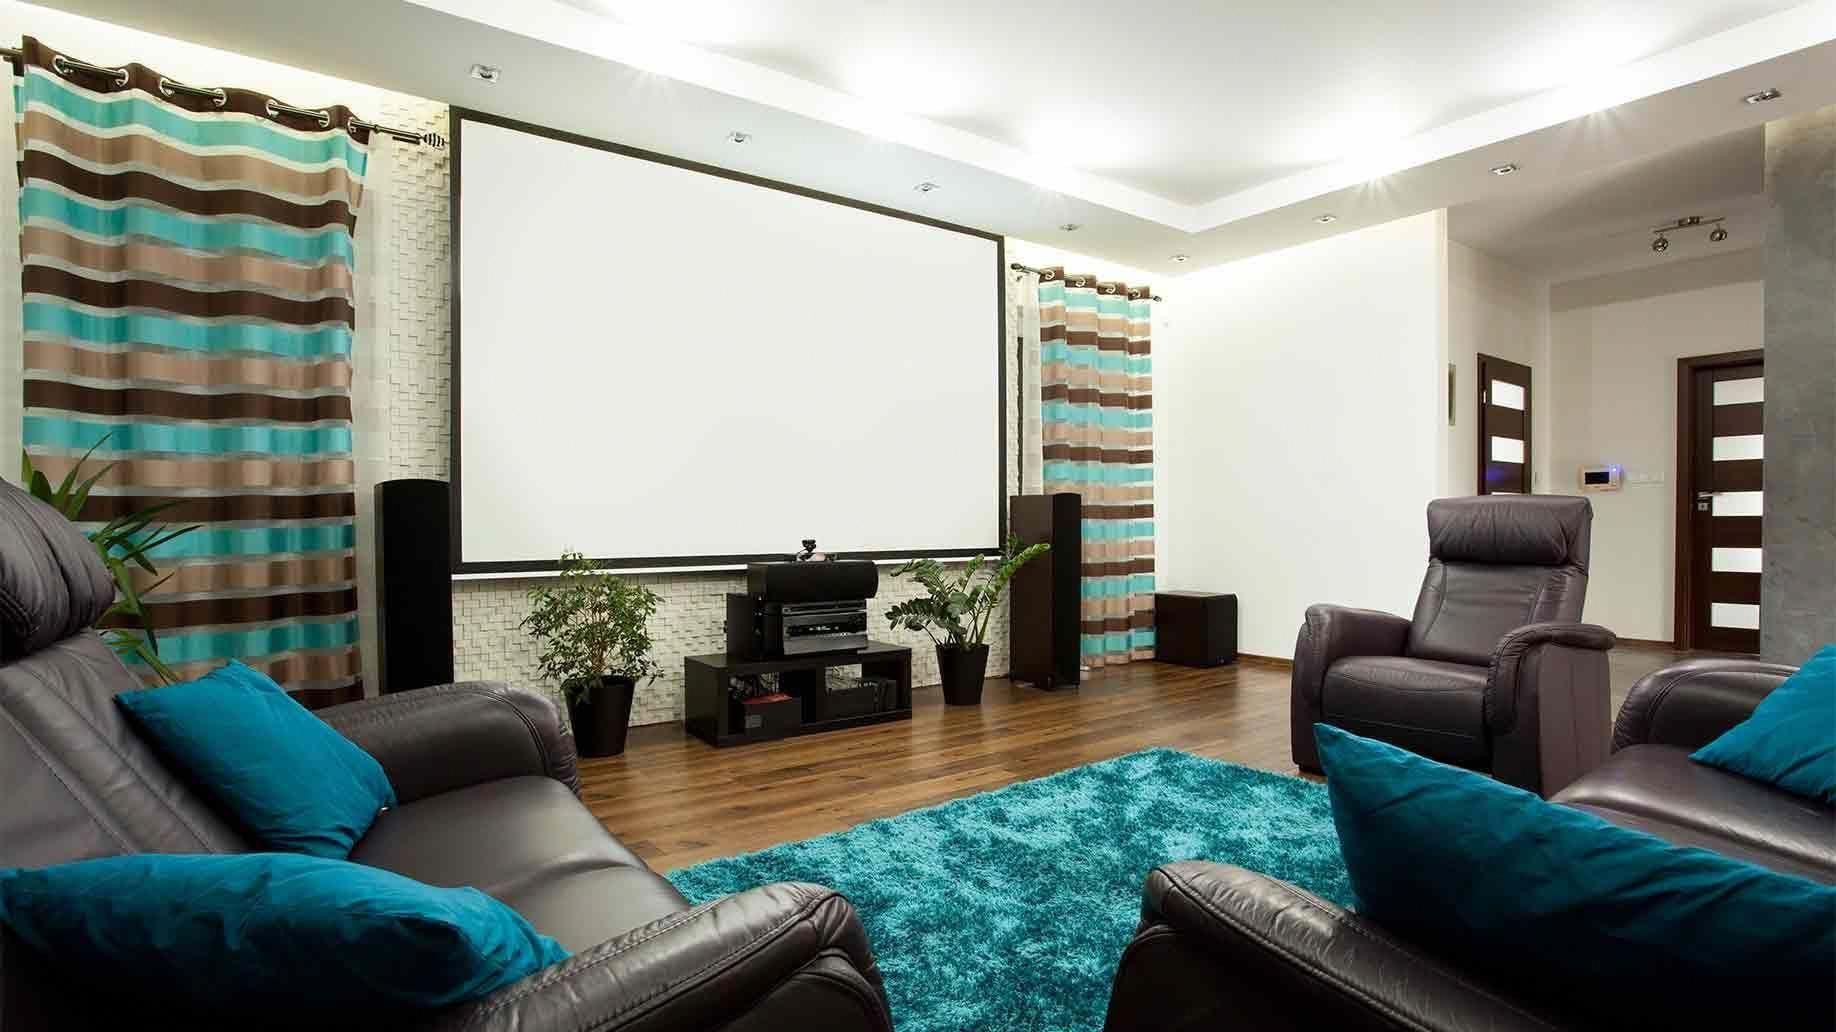 How to build a home movie theater room on a budget hometheatertips